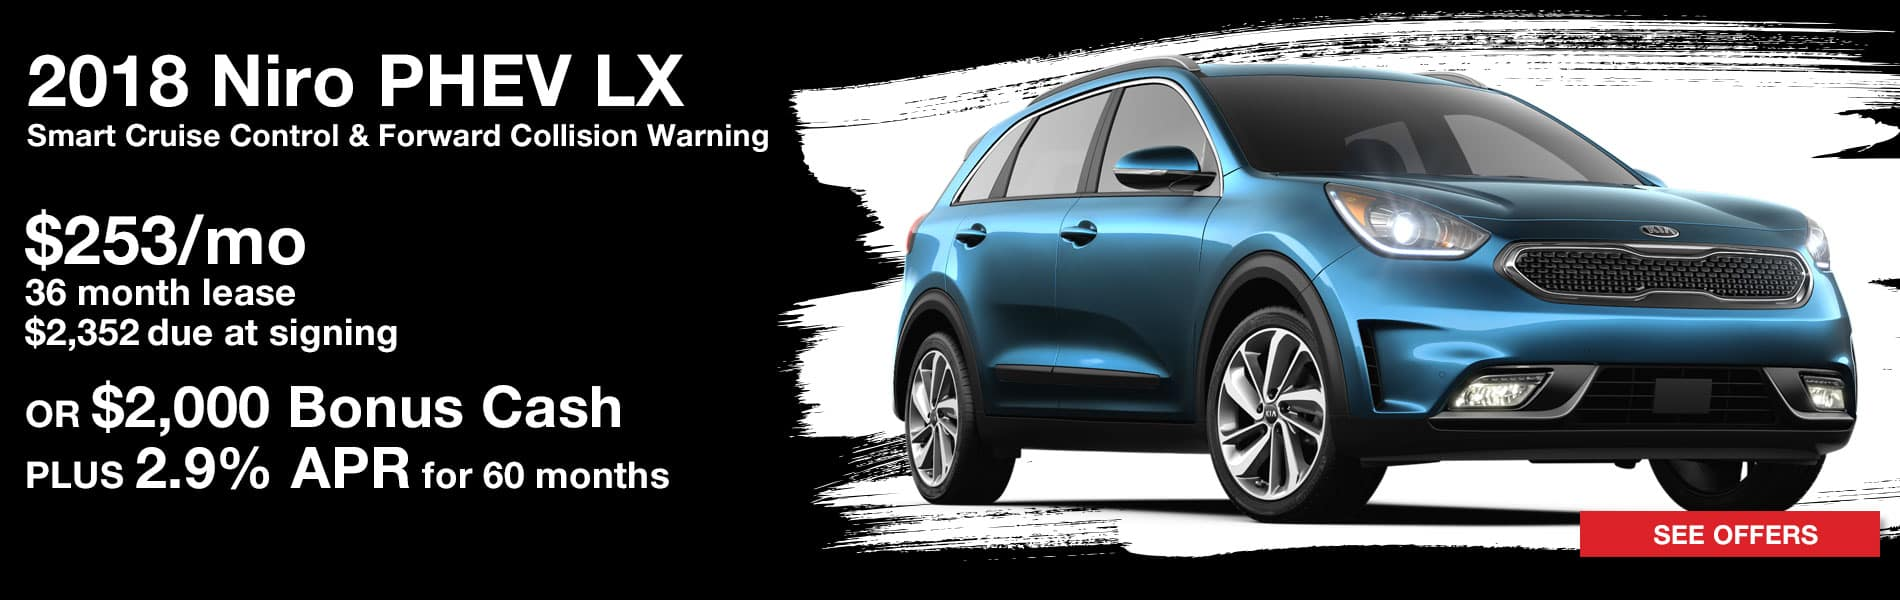 Lease a 2018 Niro PHEV LX for $253 per month with $2,352 due at signing